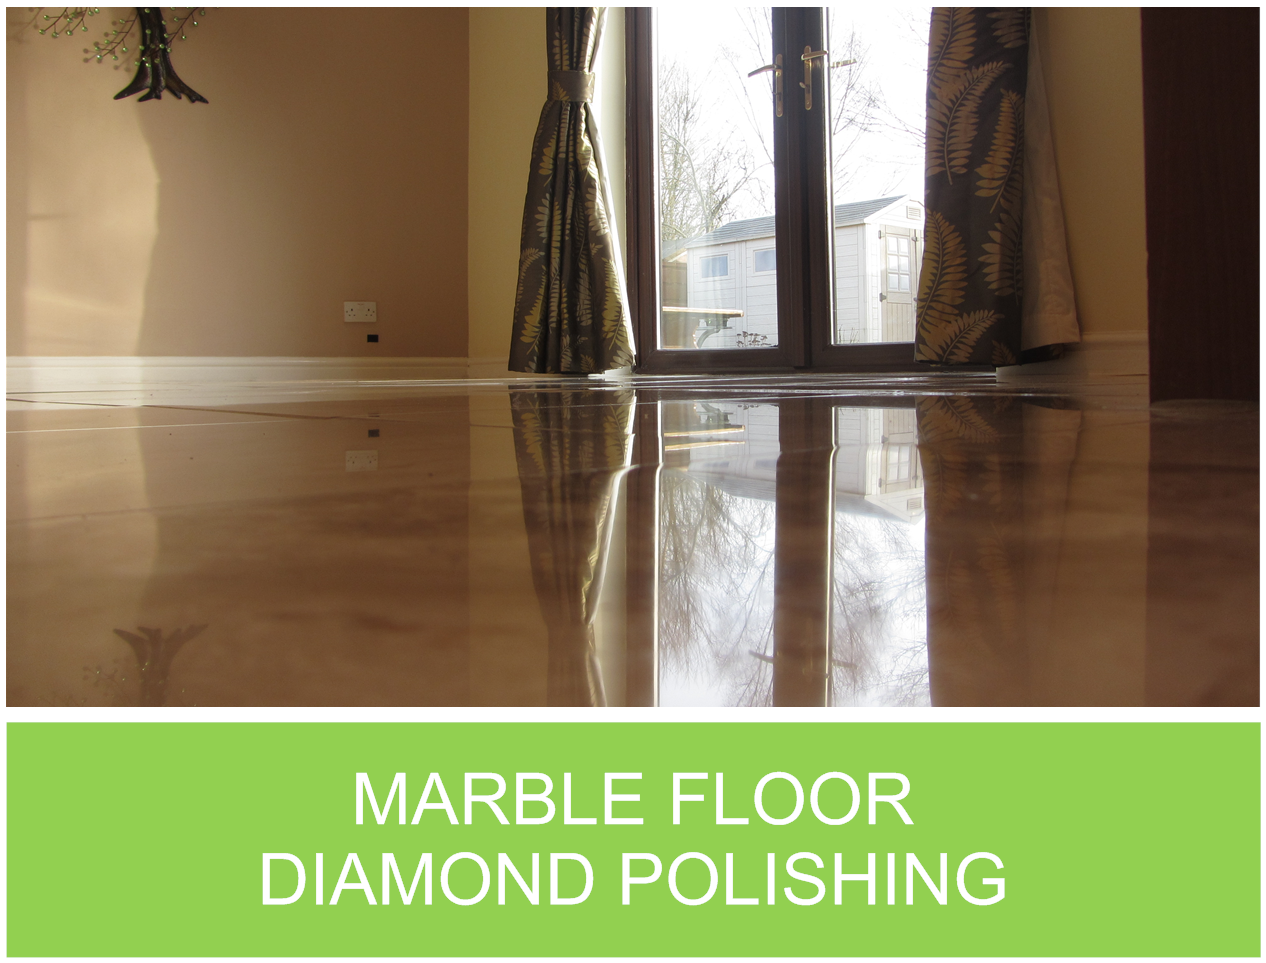 Marble Floor Cleaning Sealing Diamond Polishing High Shine